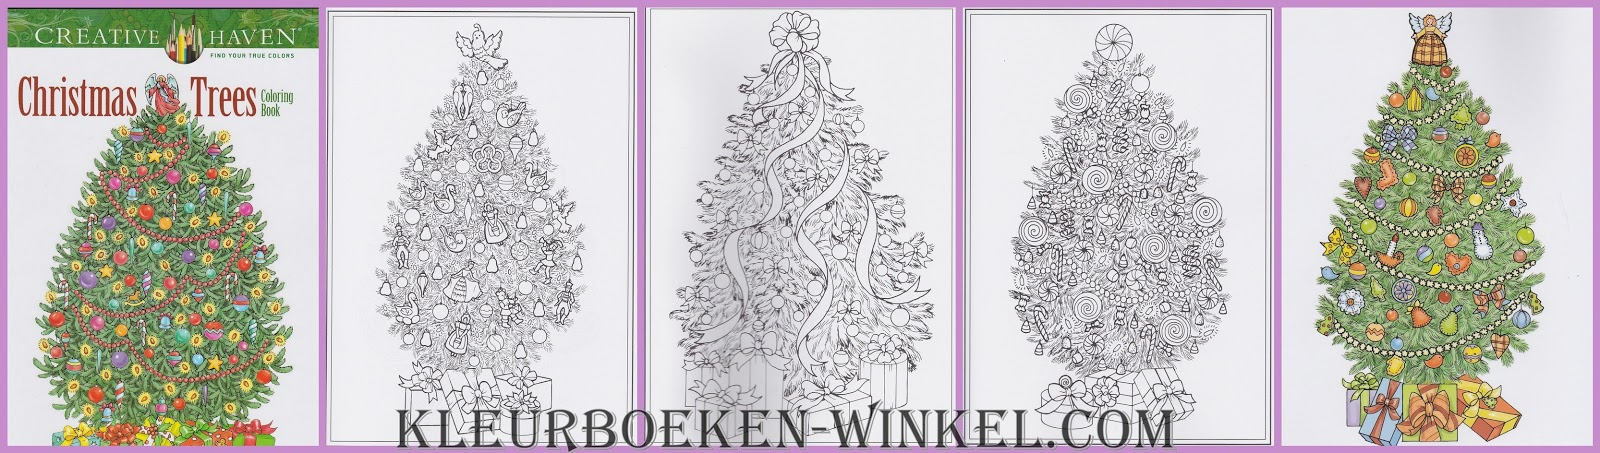 CH 105 christmas trees, kleurboek Creative Haven, kerst en winter